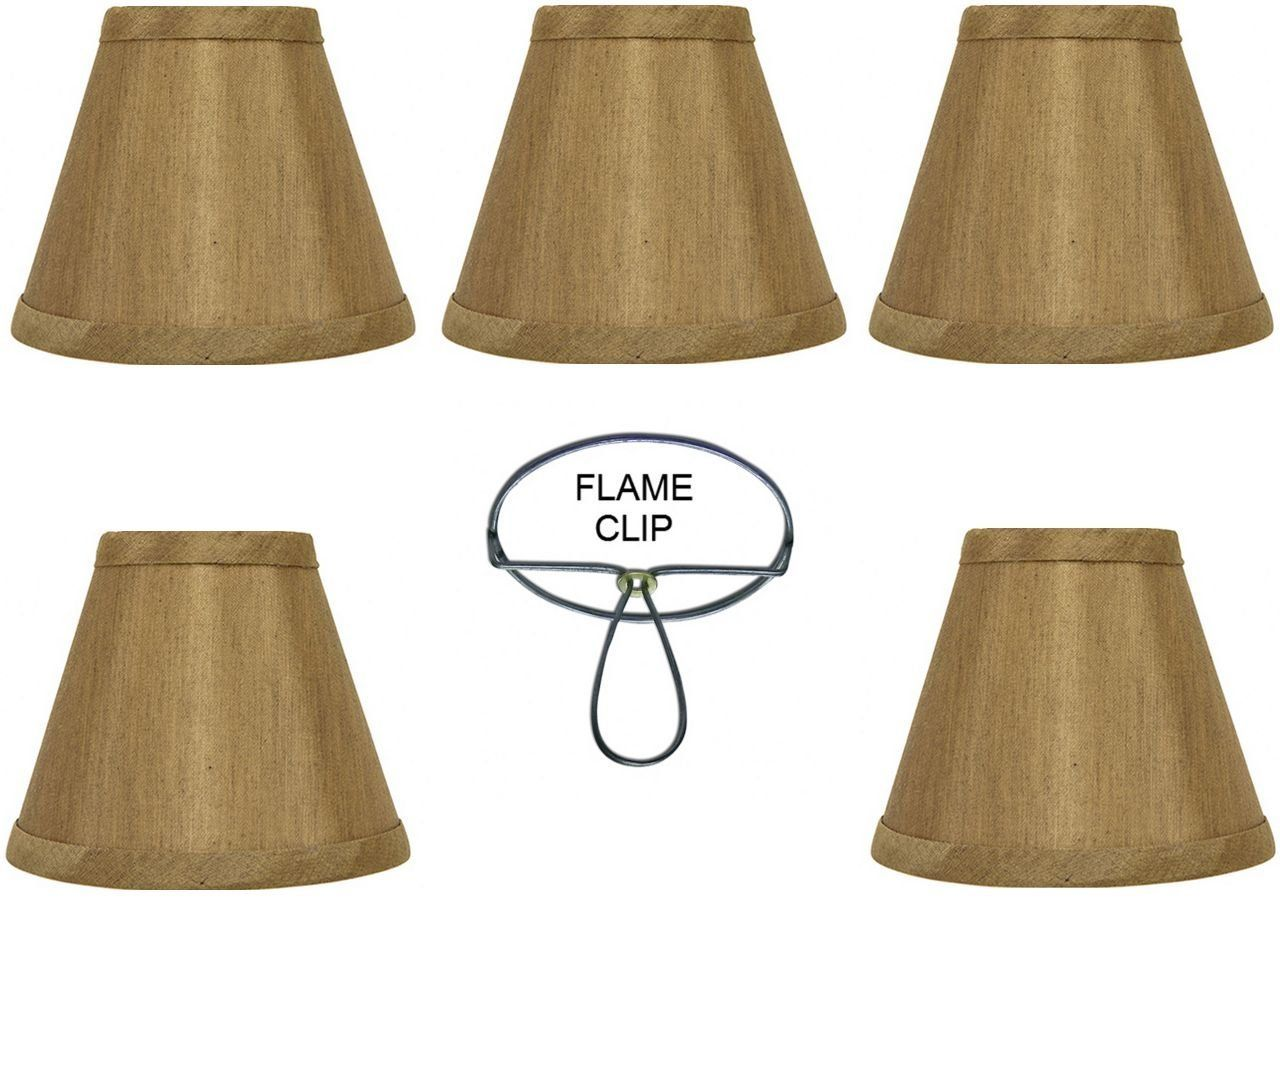 Mini chandelier shades clip on small lamp shades set of five bronze mini chandelier shades clip on small lamp shades set of five bronze silk type material arubaitofo Image collections